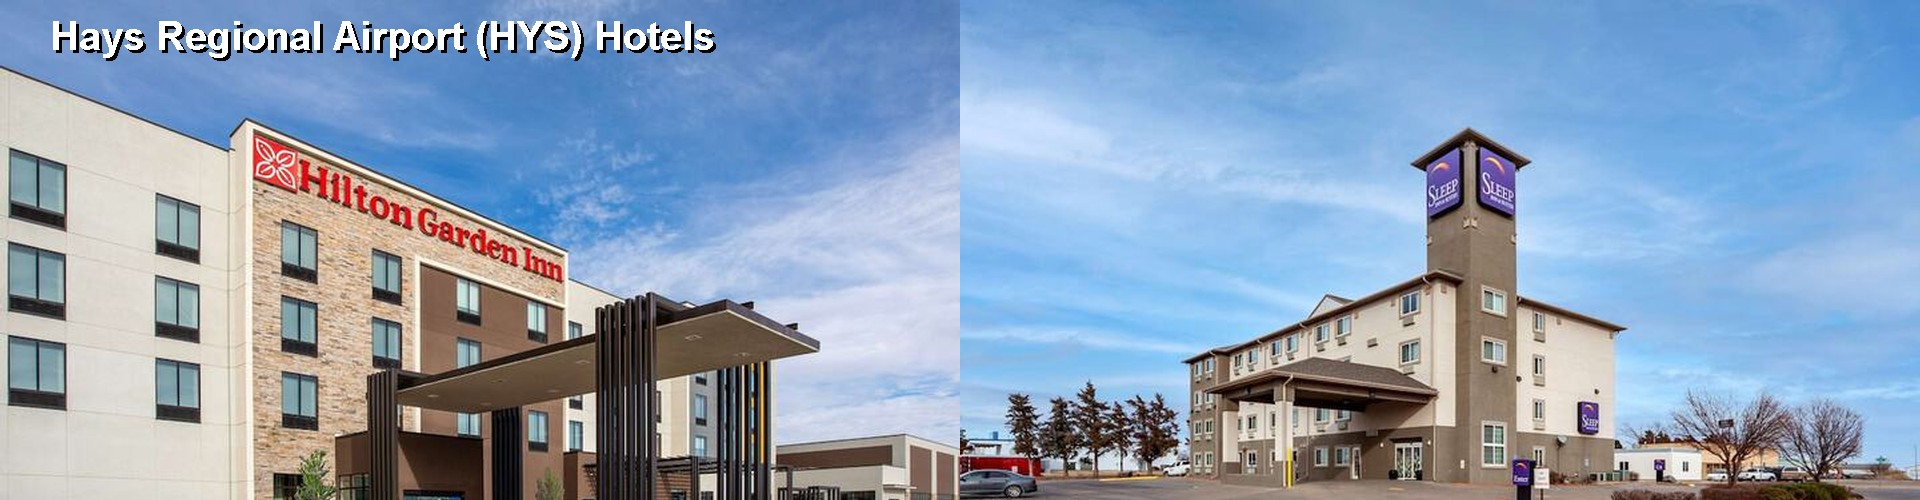 5 Best Hotels near Hays Regional Airport (HYS)